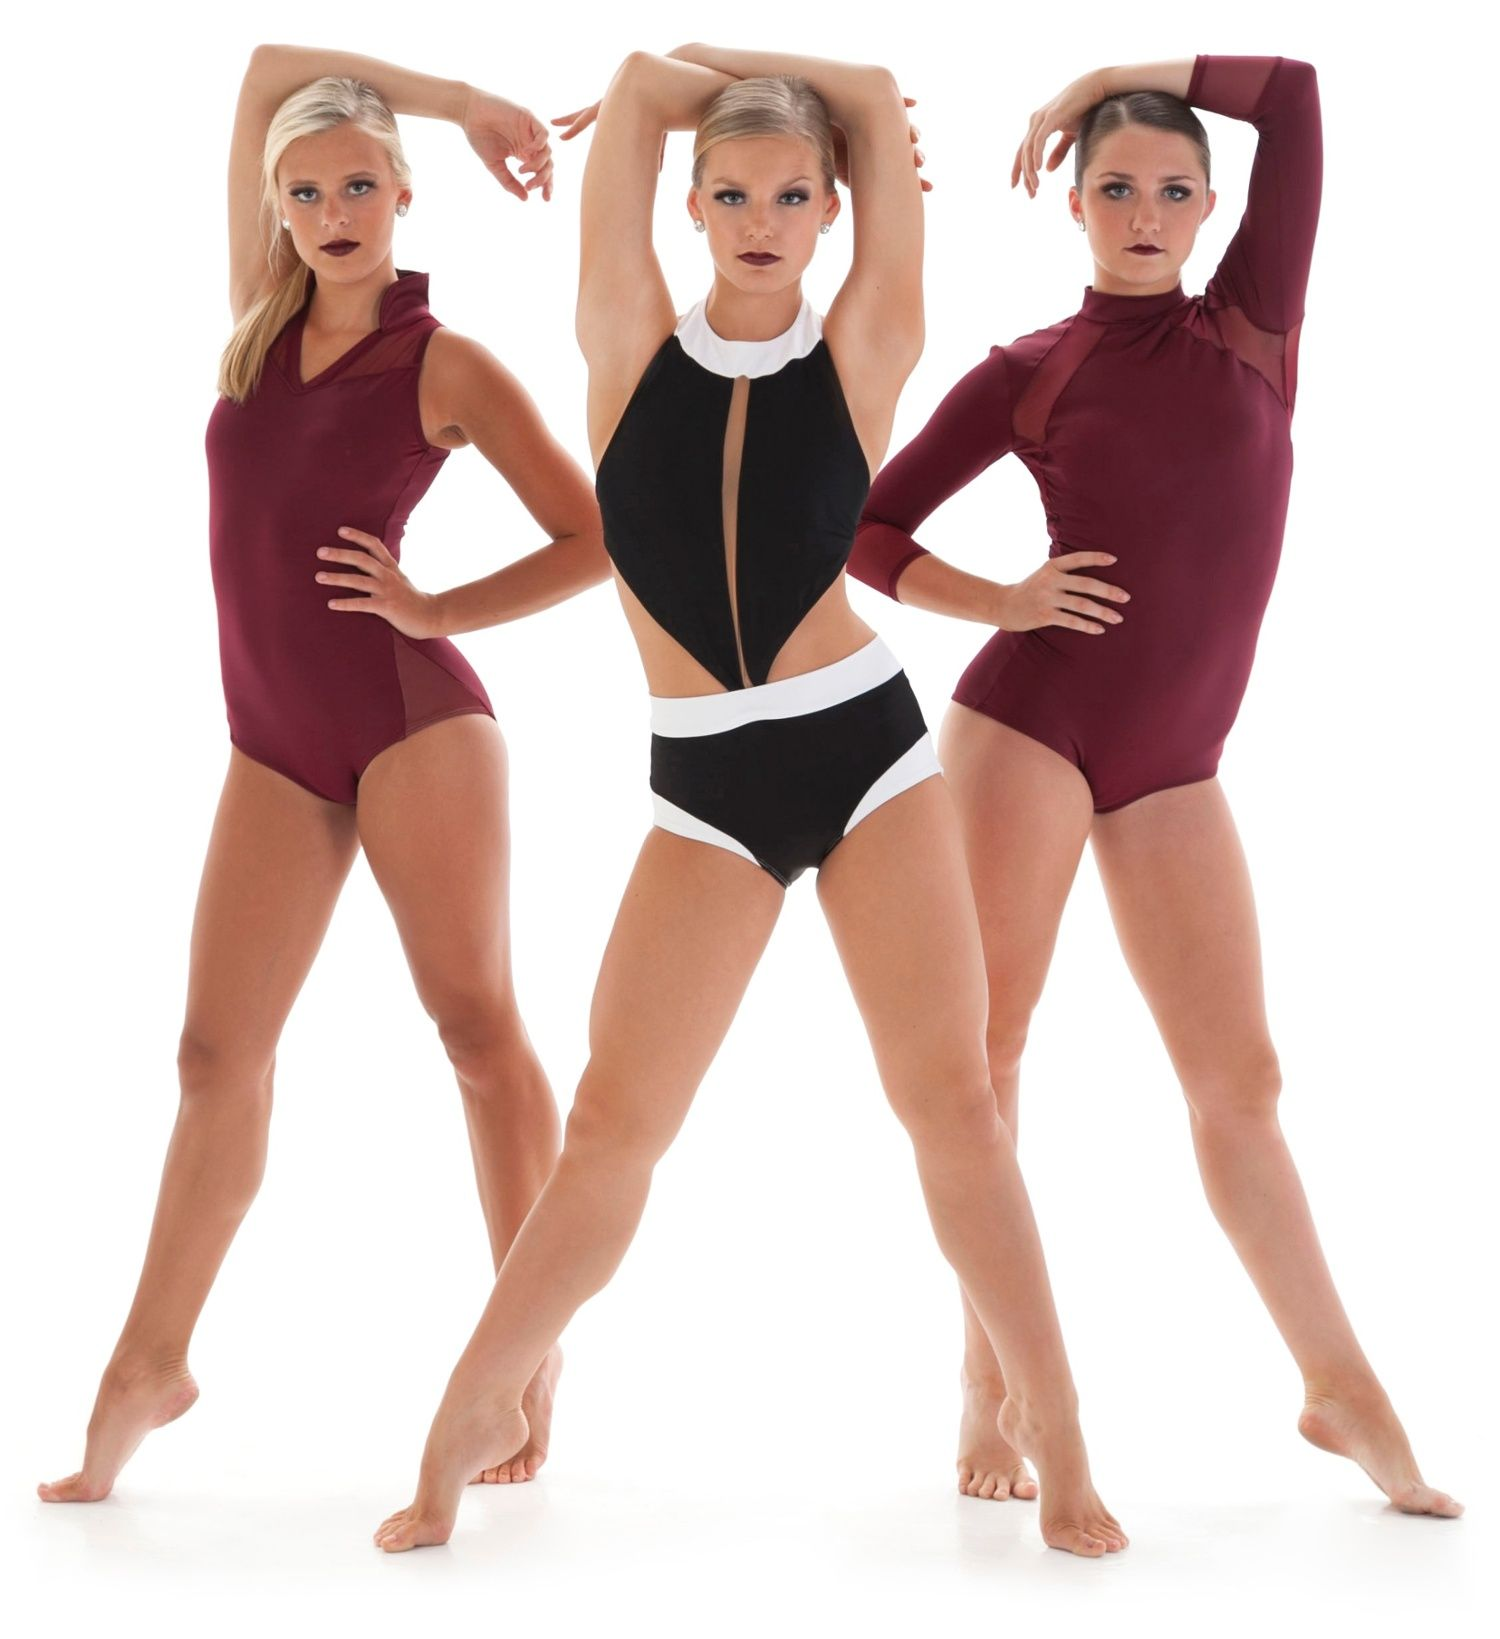 dance competition costume contemporary dance leo custom leotard Lyrical Dance Costume contemporary dance costume custom dance costume